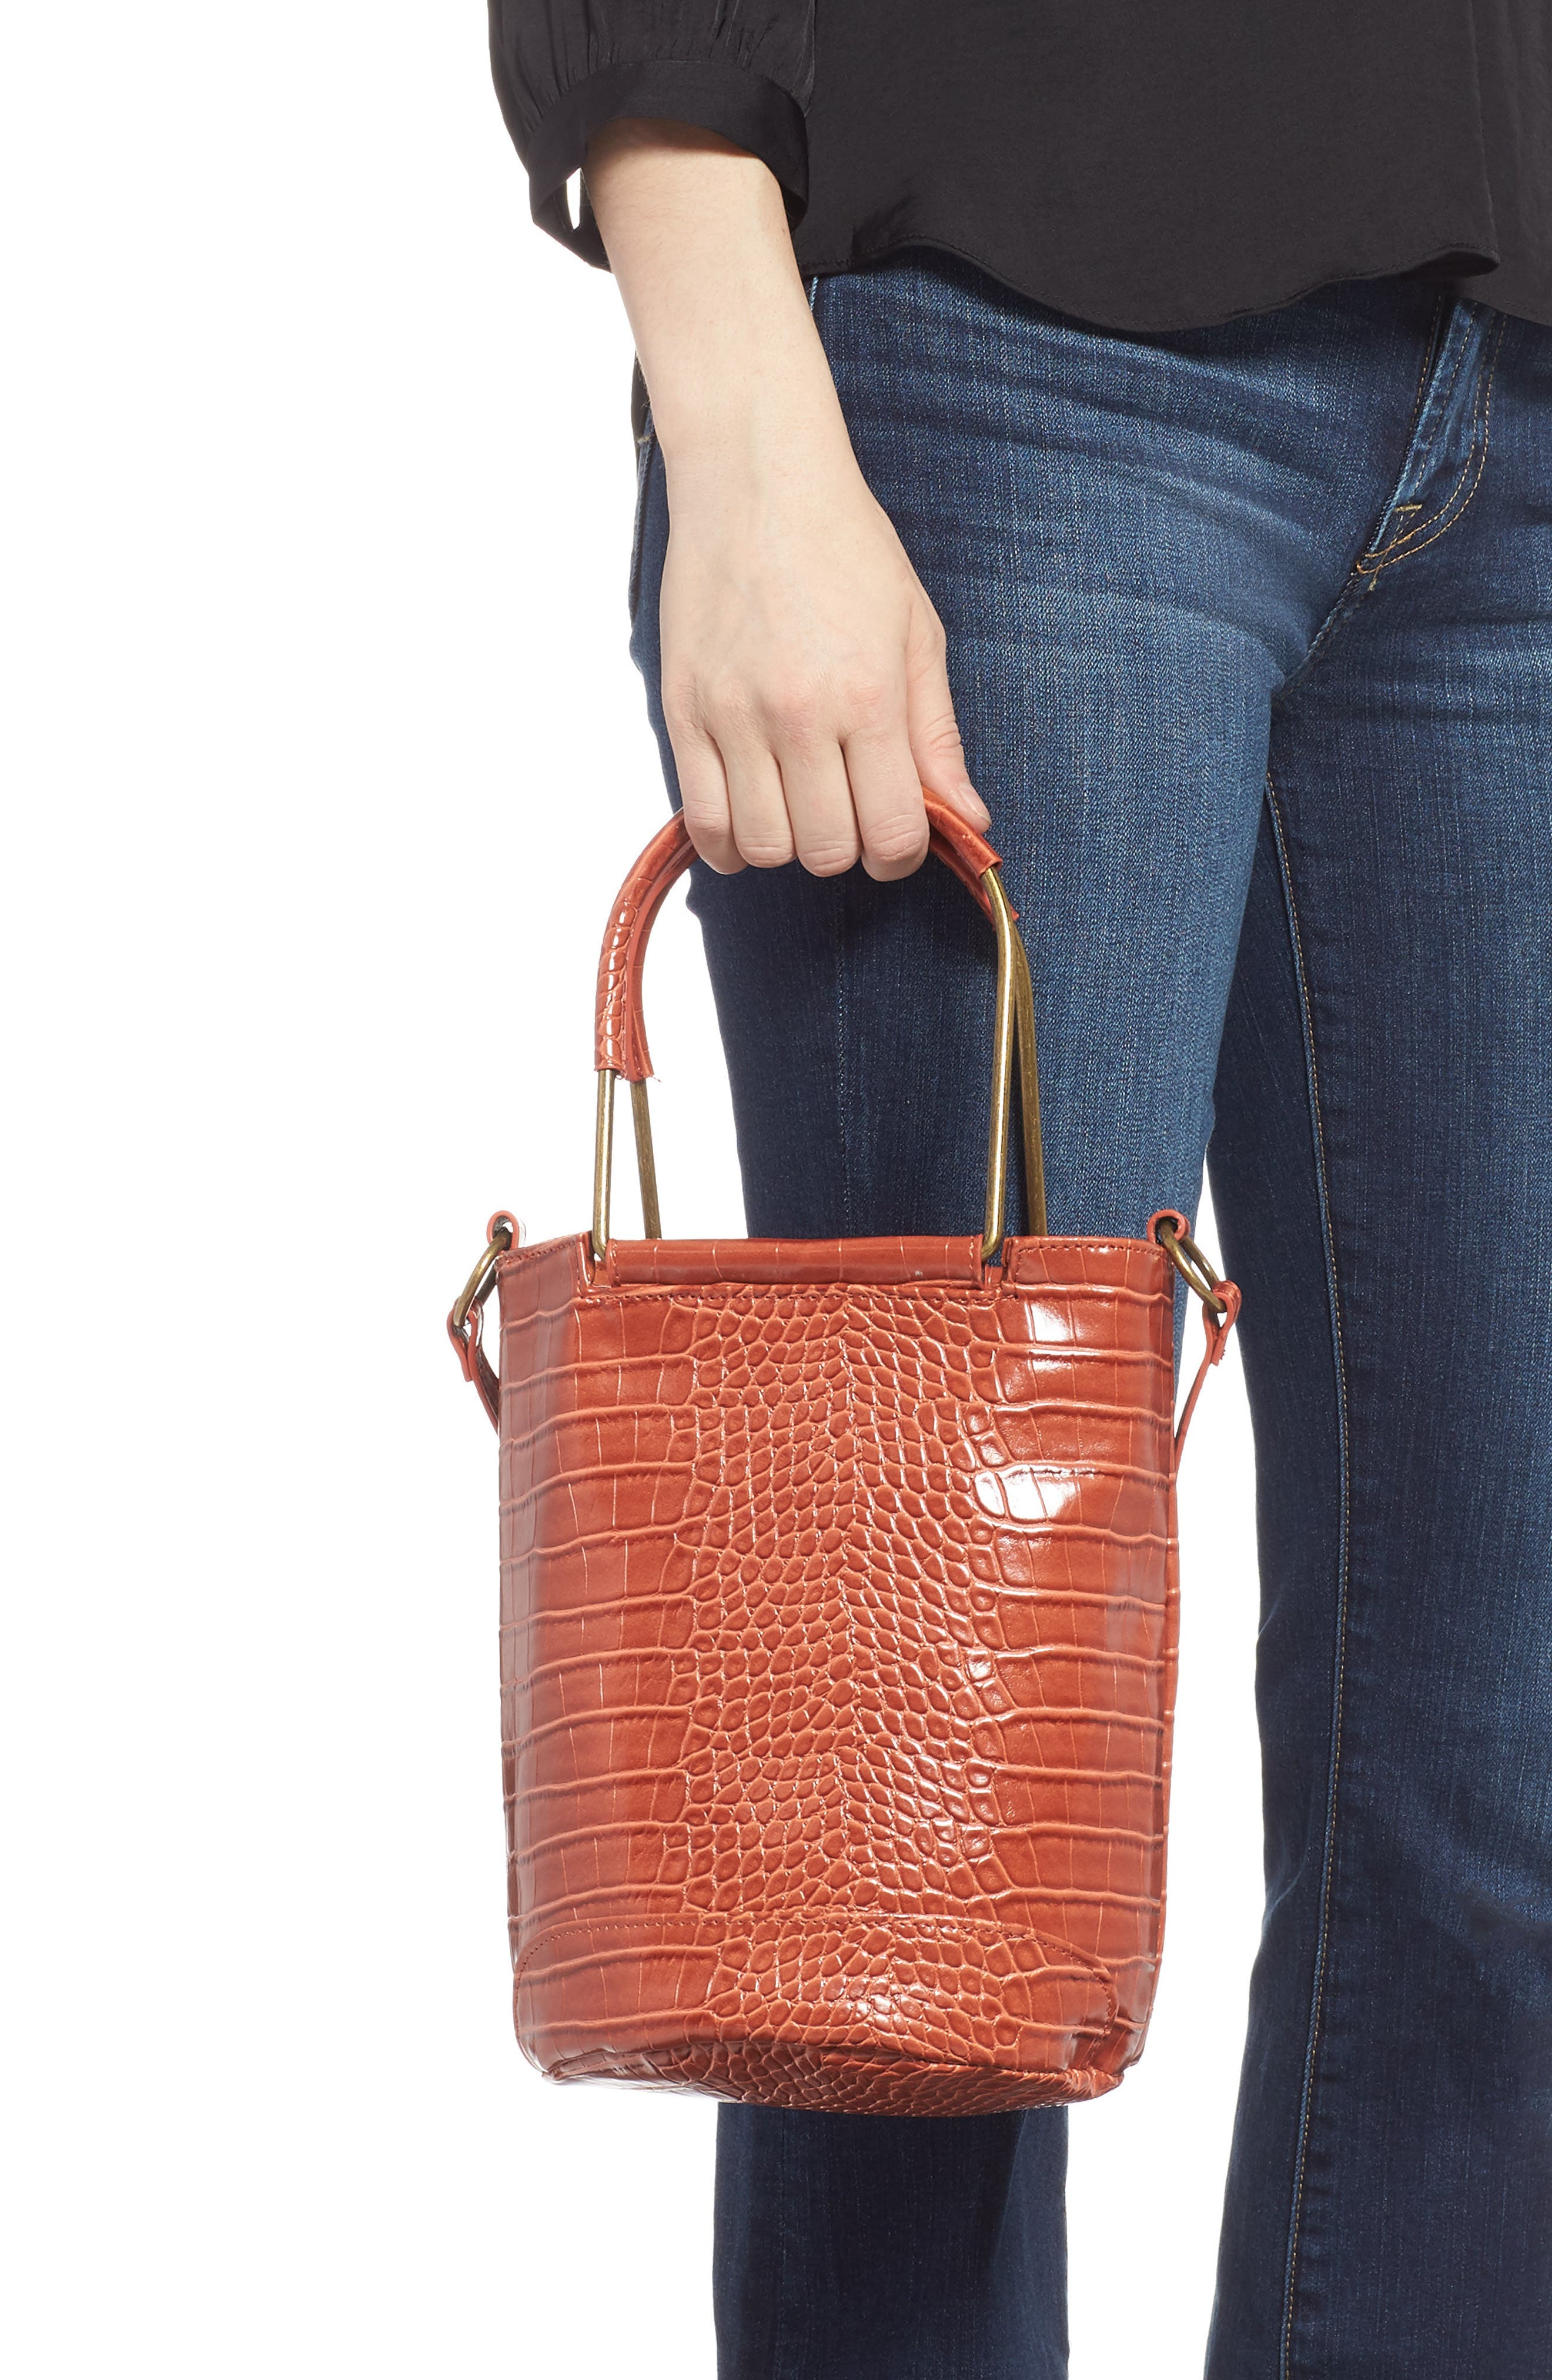 T-SHIRT & JEANS, Croc Embossed Faux Leather Tote, Alternate thumbnail 4, color, 810